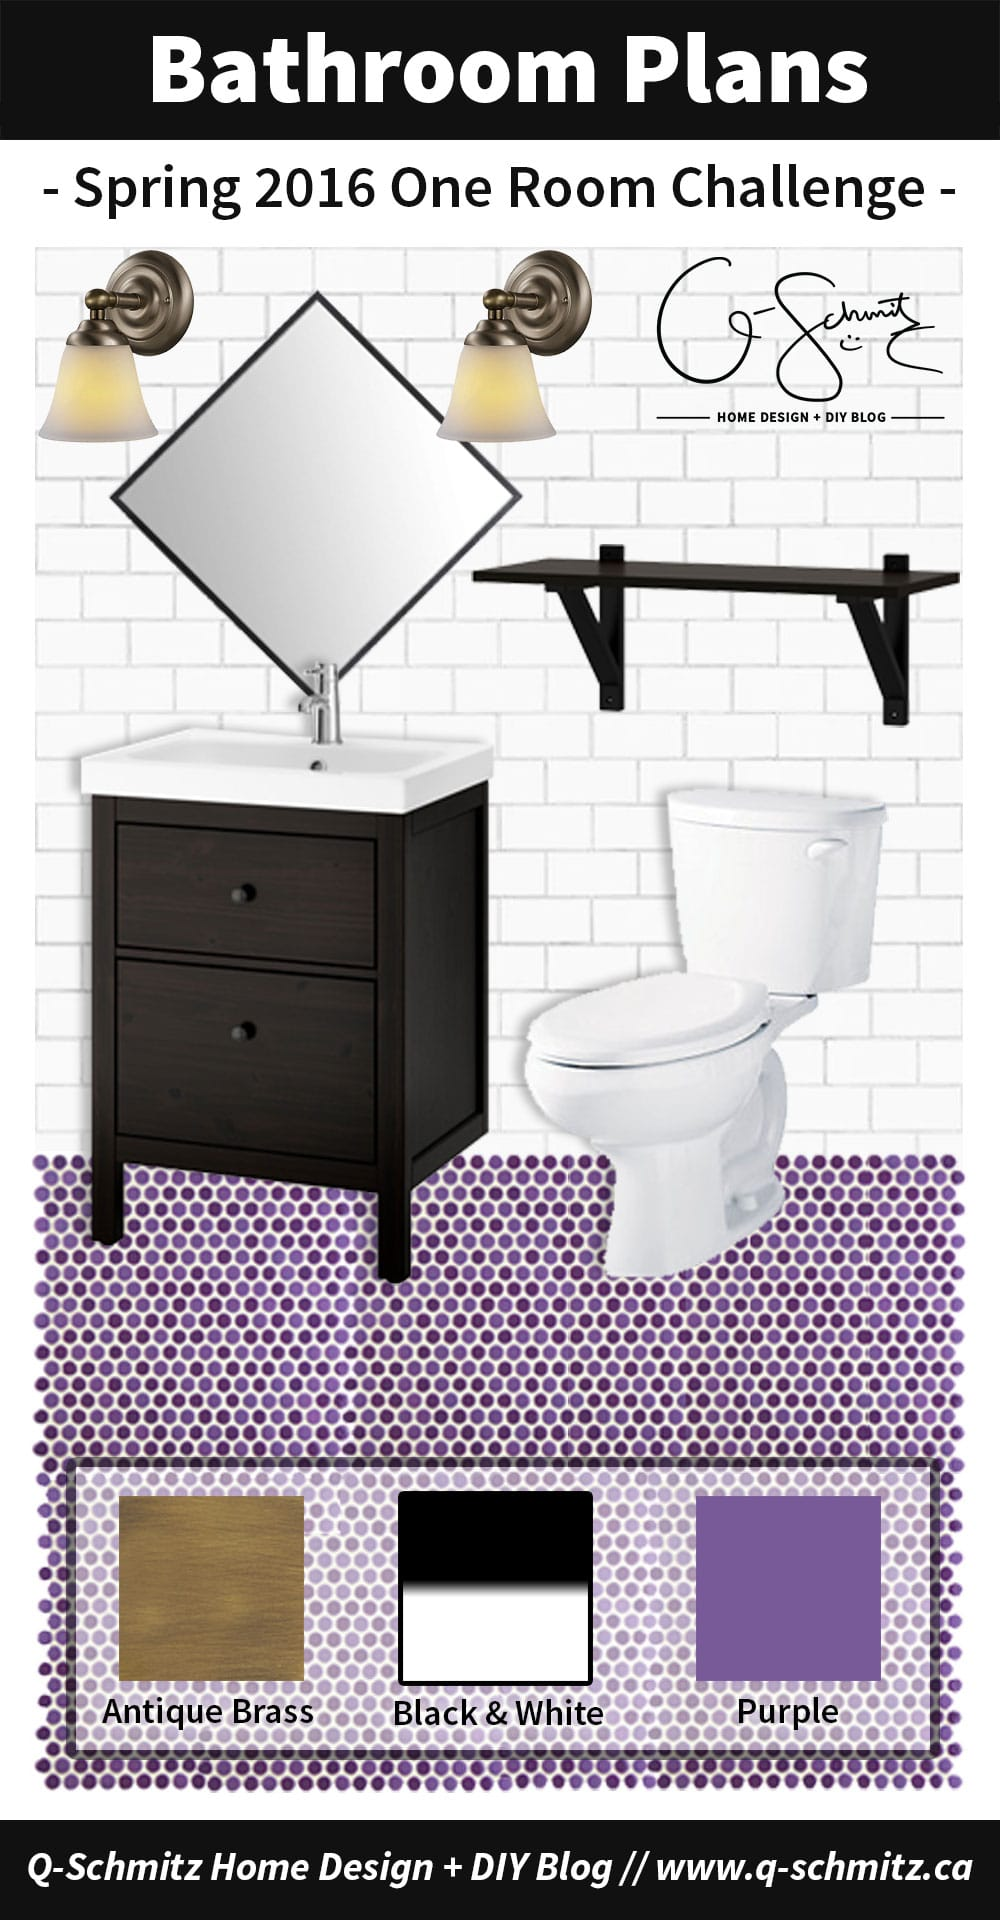 Our basement half bathroom plans involve black, white, purple and antique brass- and should be a great project for the 2016 Spring One Room Challenge (ORC)!